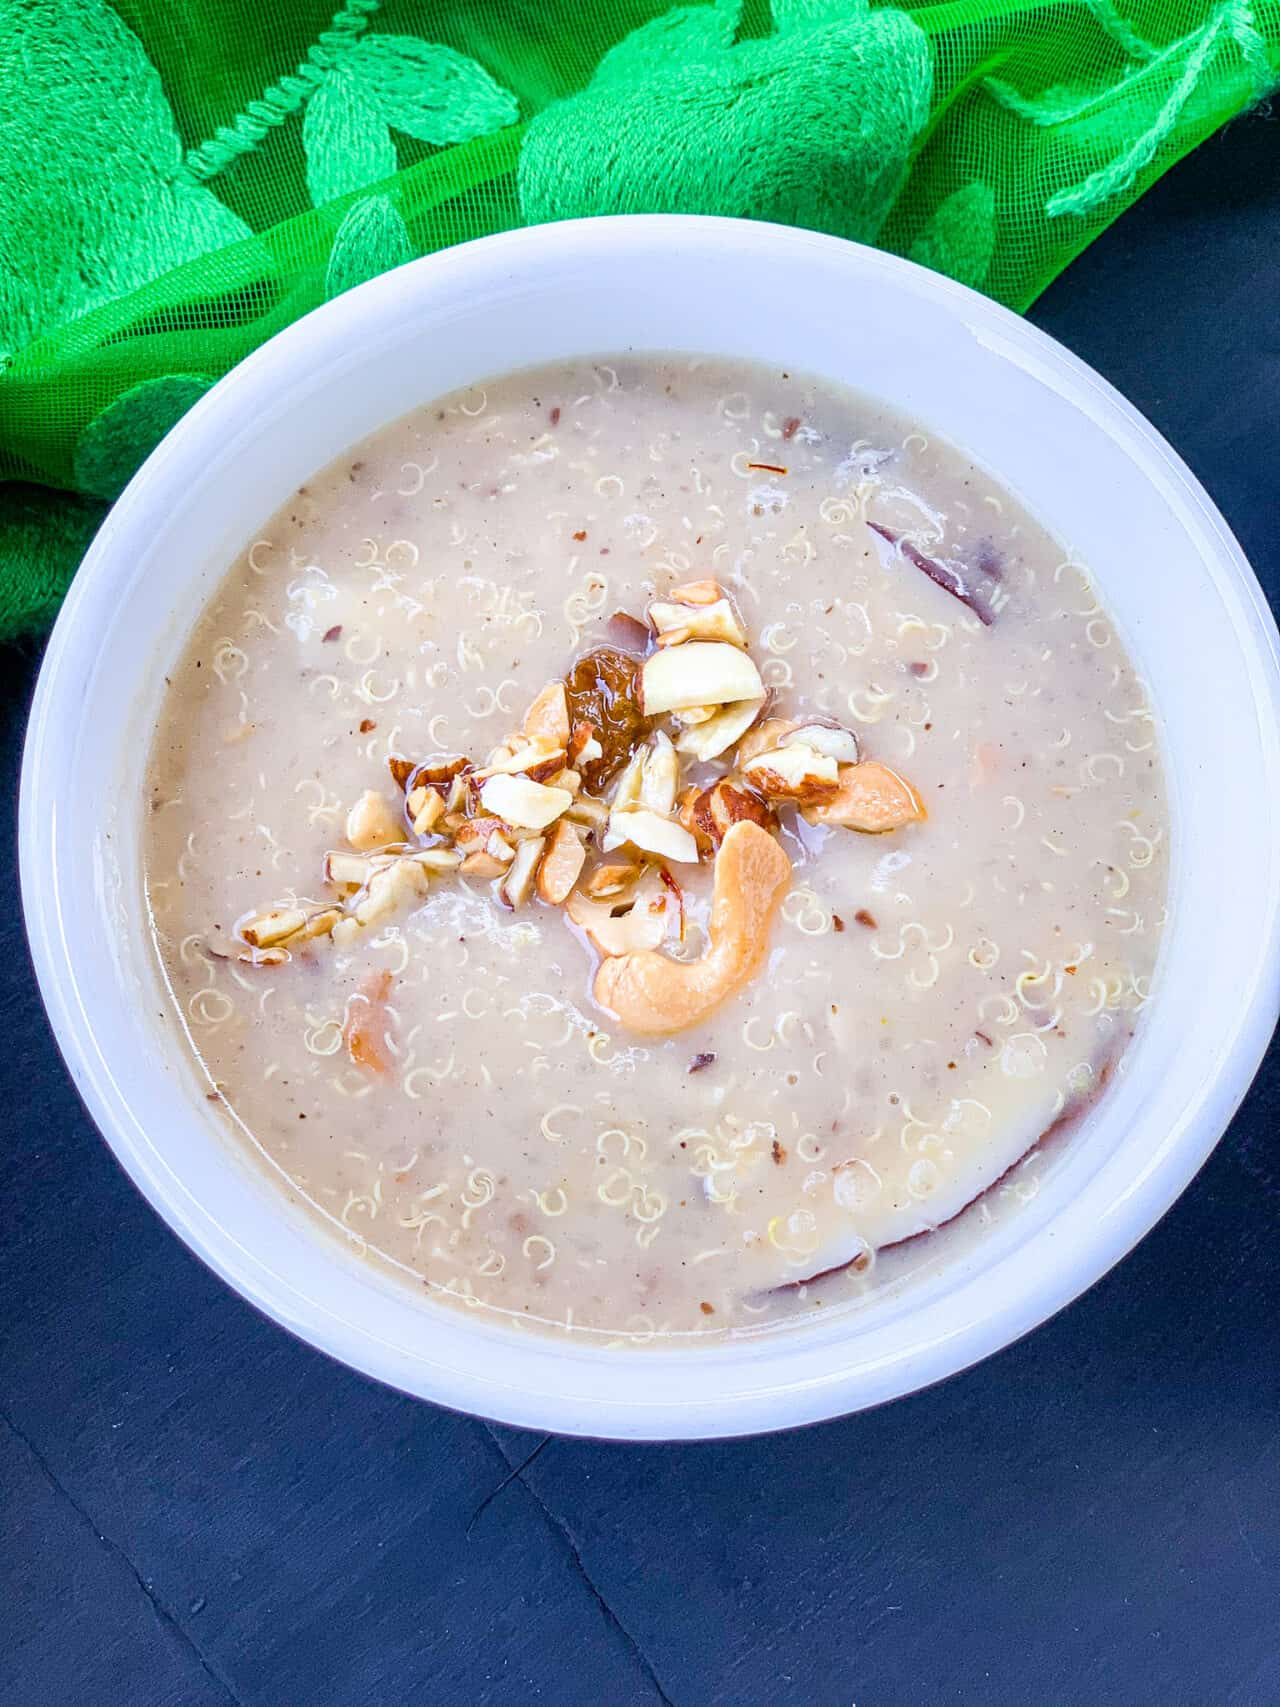 A picture of kheer in a white bowl.